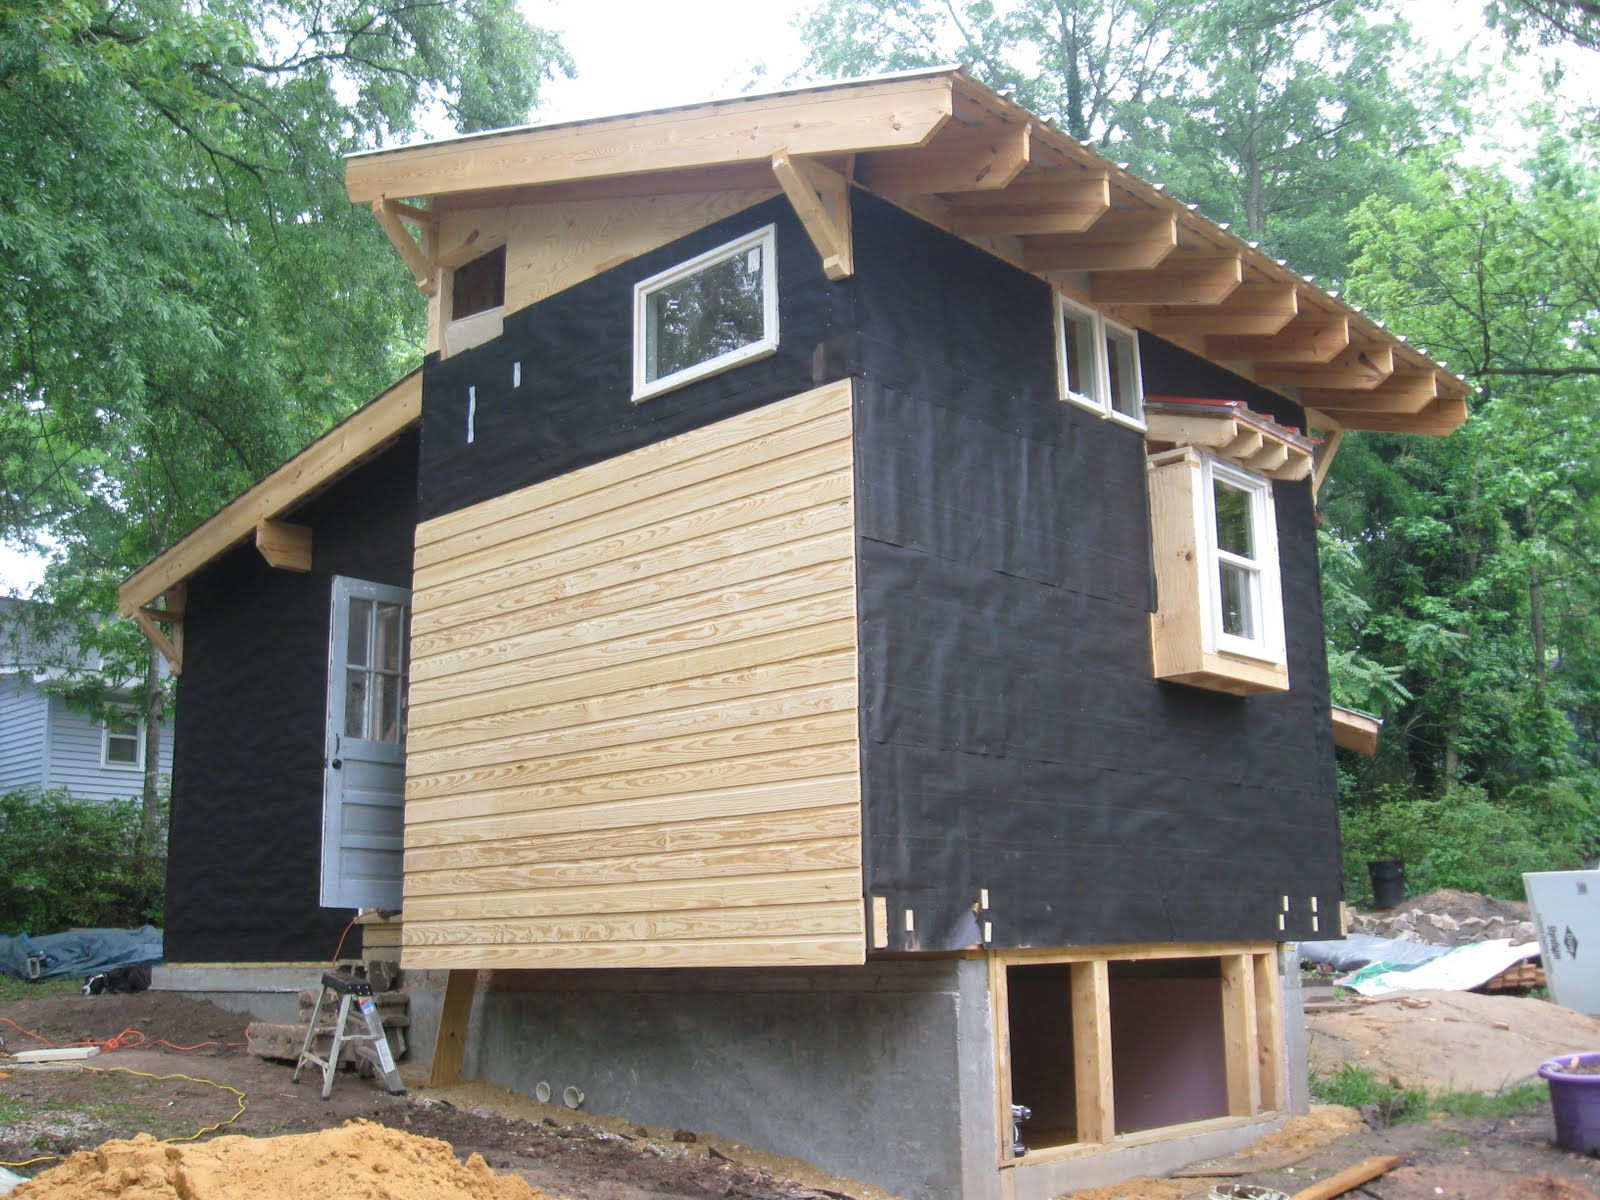 Stunning exterior plywood sheathing gallery decoration for Plywood wall sheathing